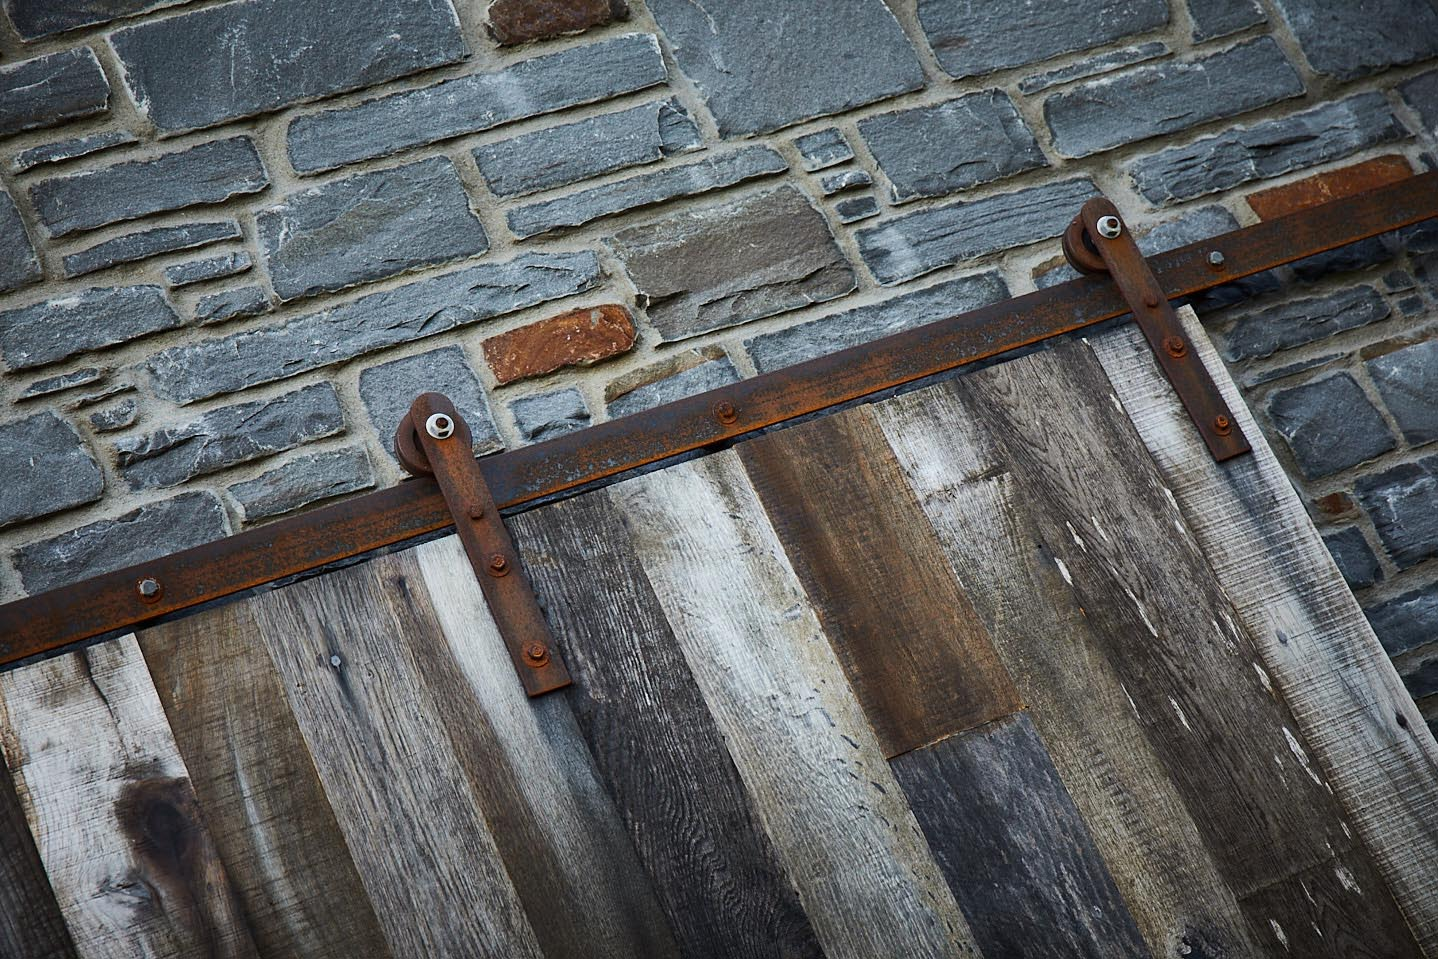 Rusted raw steel sliding door mechanism against stone wall